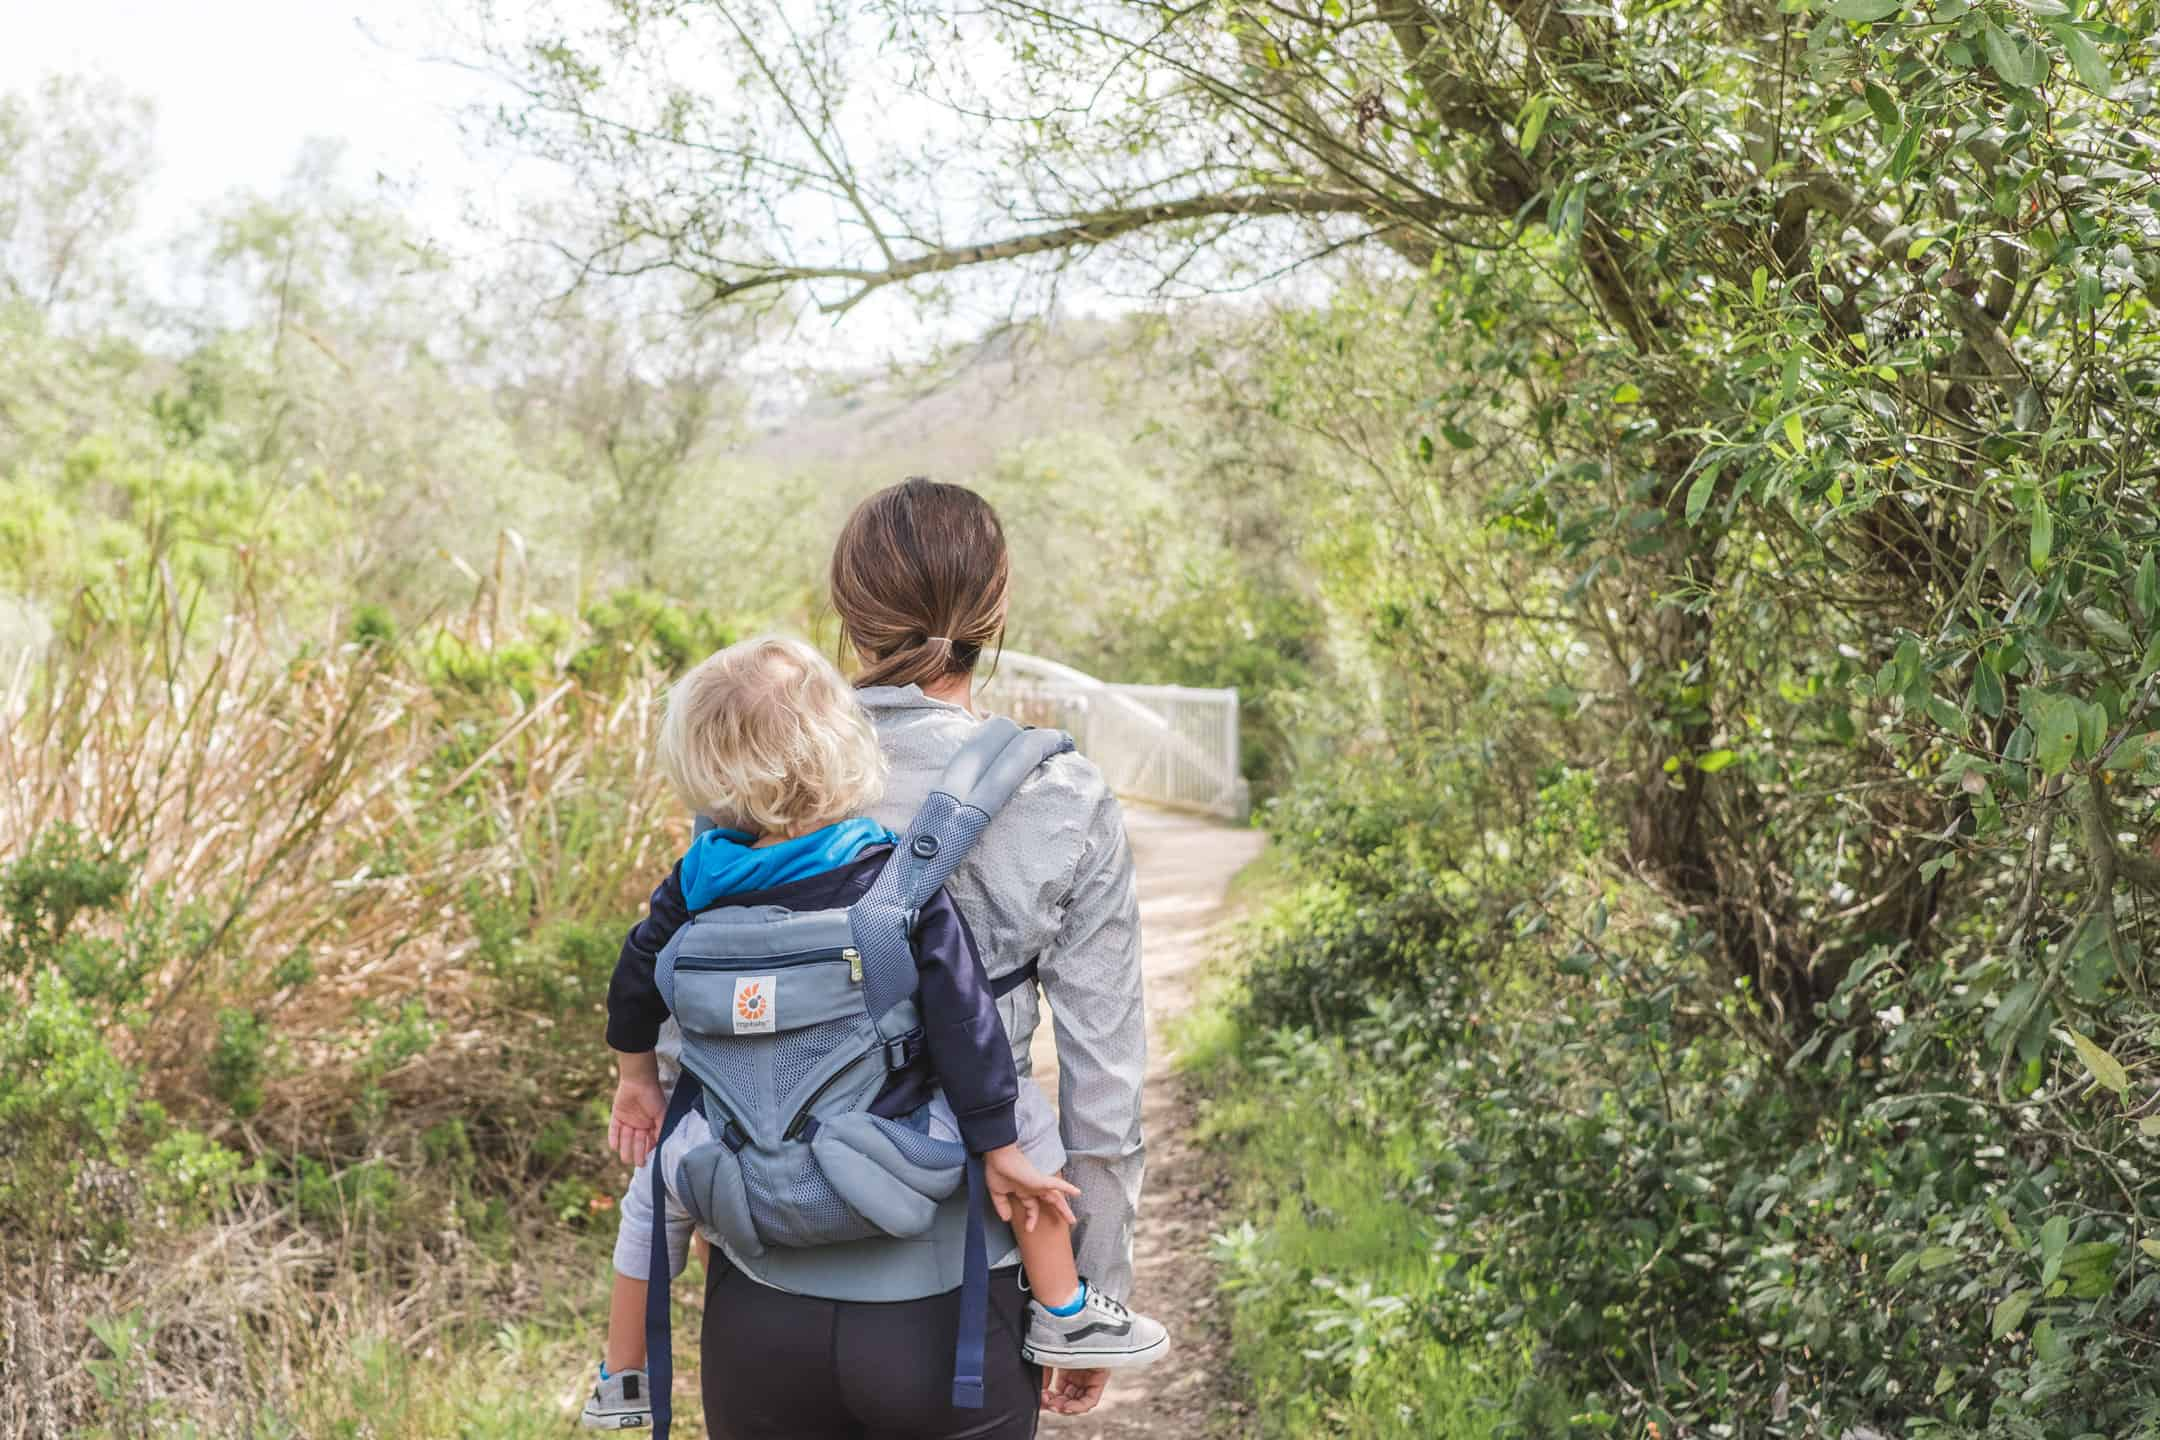 Exploring Southern California with Ergobaby: 5 kid-friendly hikes in Orange County | The new Ergobaby Omni 360 Baby Carrier All-In-One: Cool Air Mesh has become our go-to for our favorite hikes around Southern California. The cool mesh paneling makes it lightweight and breathable. It's perfect for these 5 kid-friendly hikes in Orange County, California. Plus, it carries from infants to toddlers in four different carry positions!